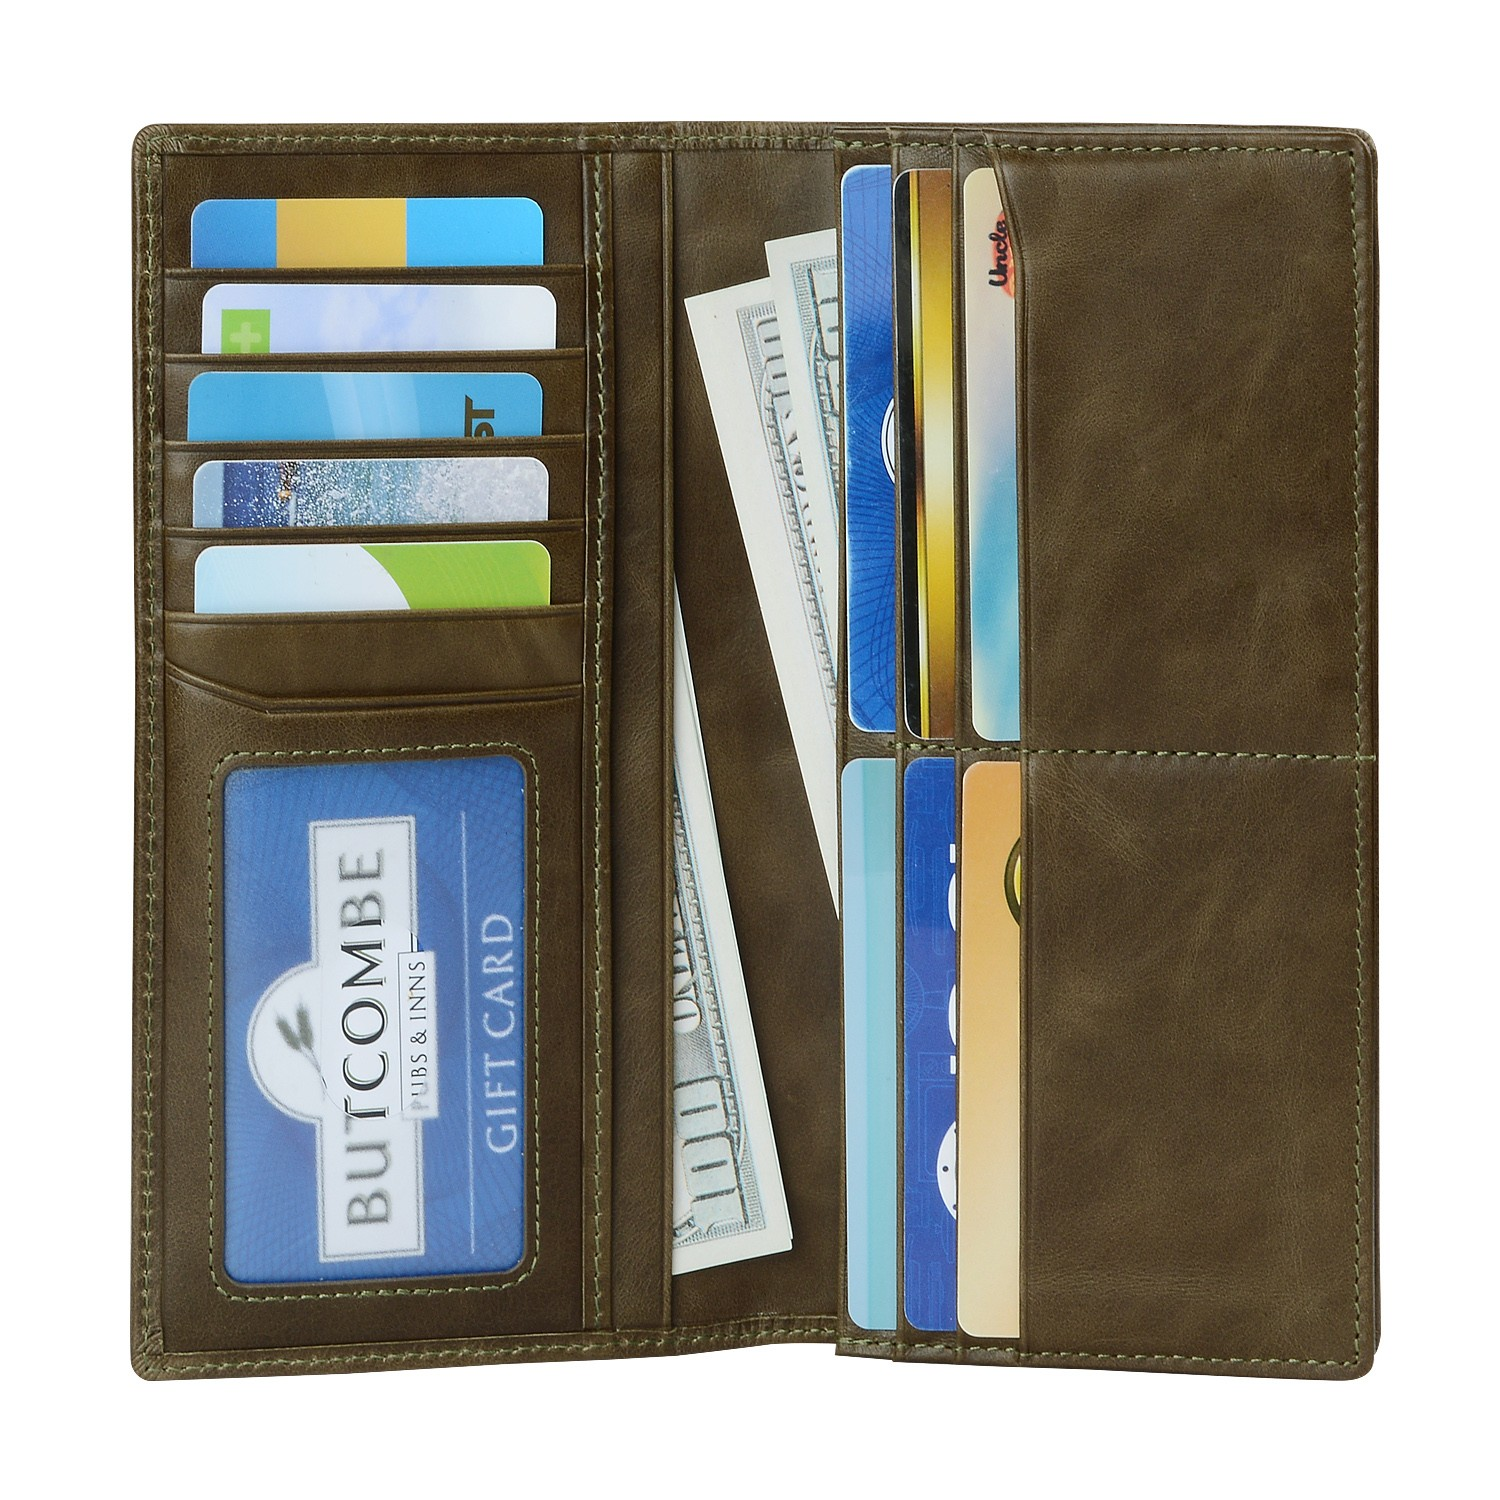 AIVI beautiful leather credit card wallet factory for iphone 8 / 8plus-4